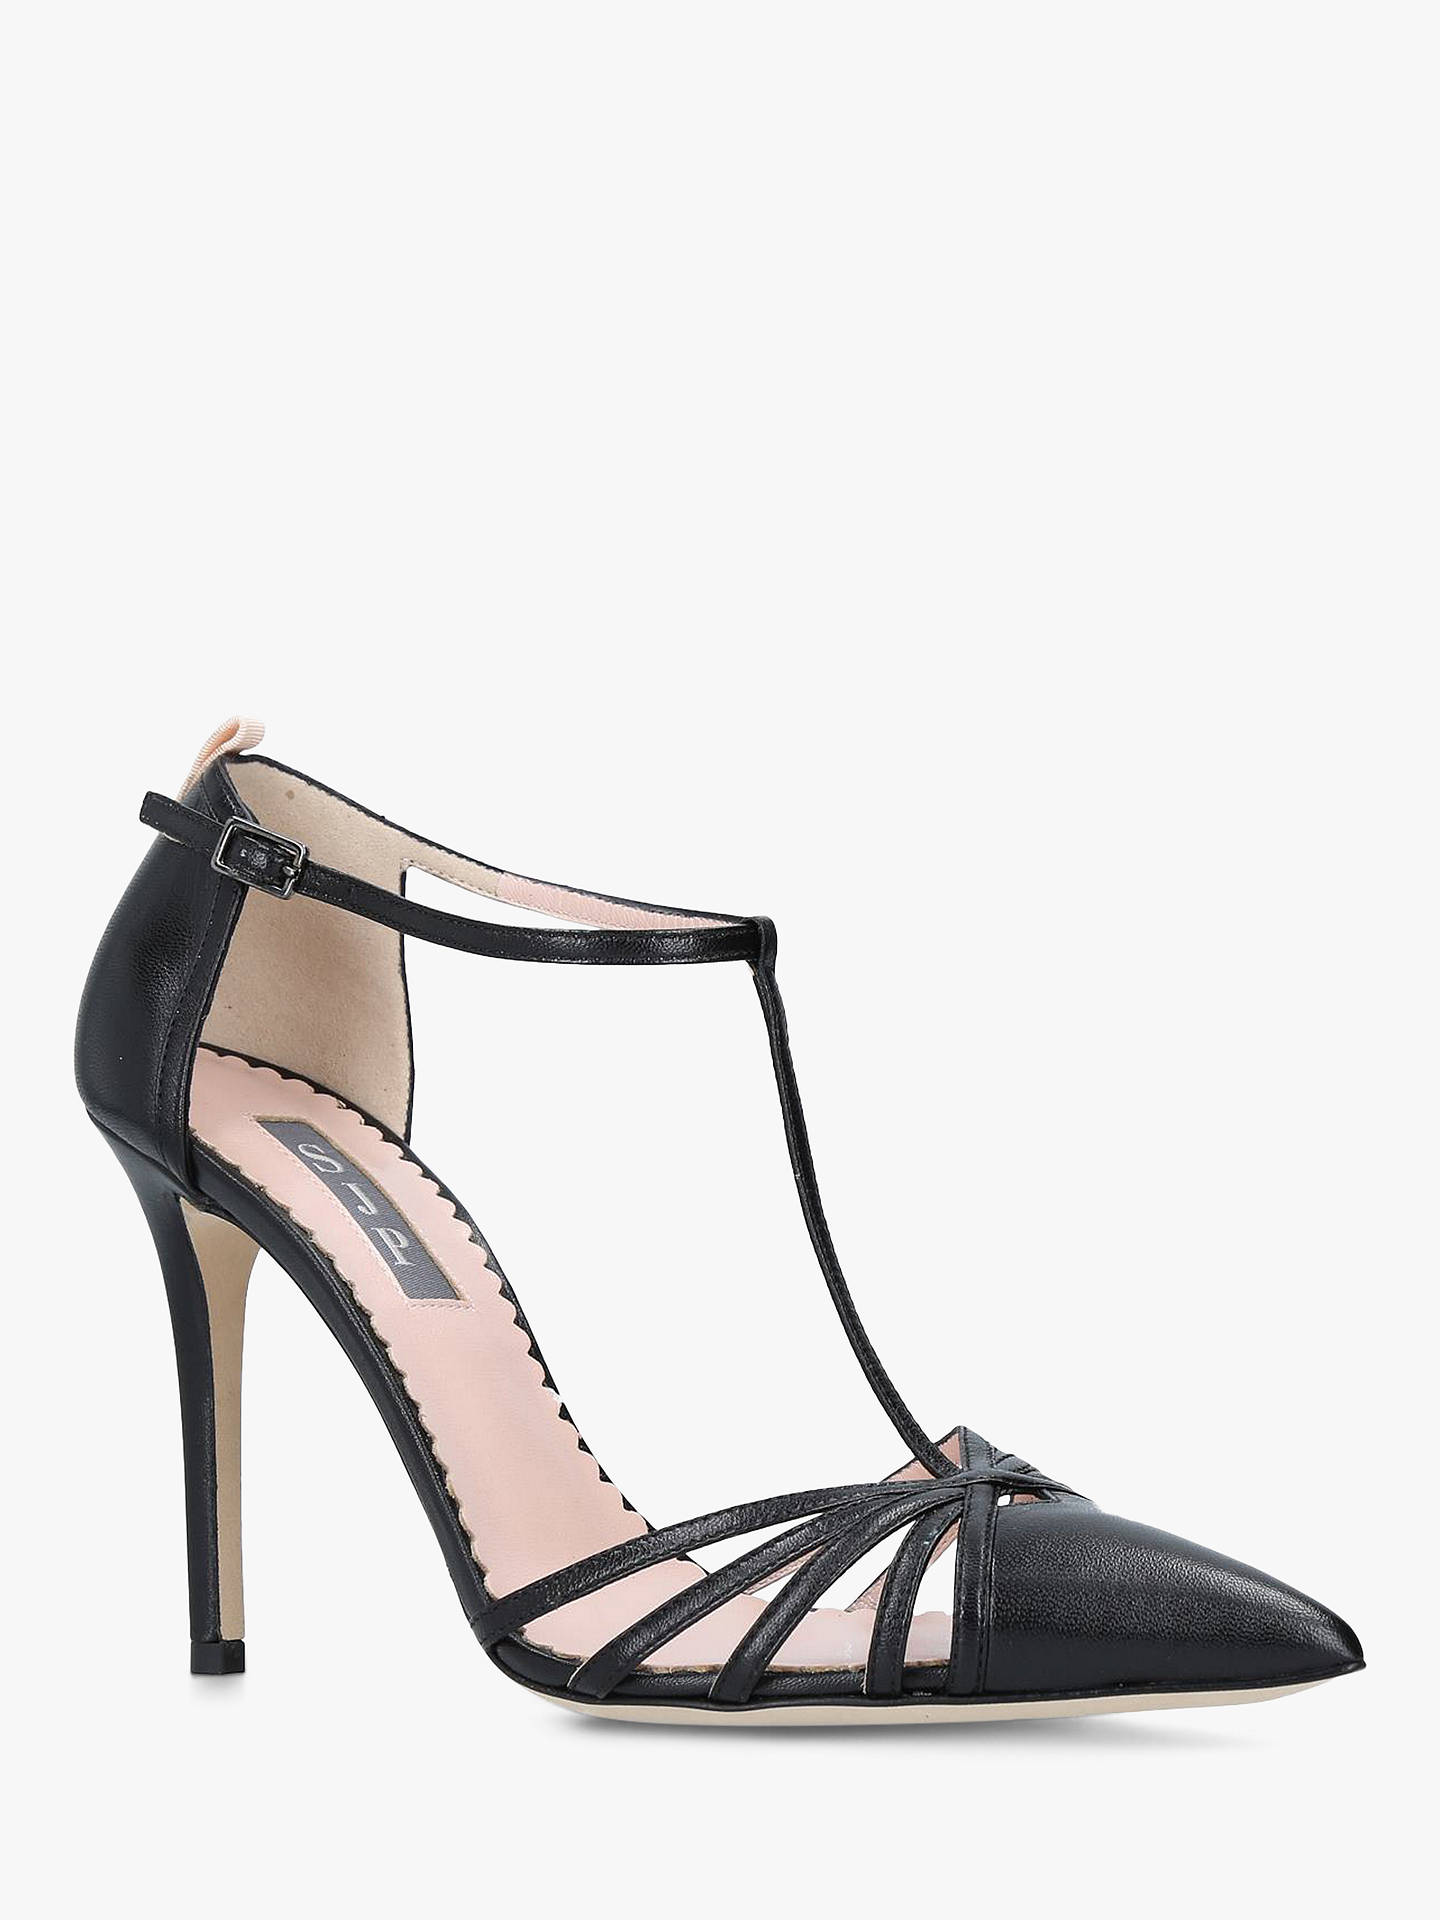 Buy SJP by Sarah Jessica Parker Carrie 100 Stiletto Heel Court Shoes, Black Leather, 8 Online at johnlewis.com